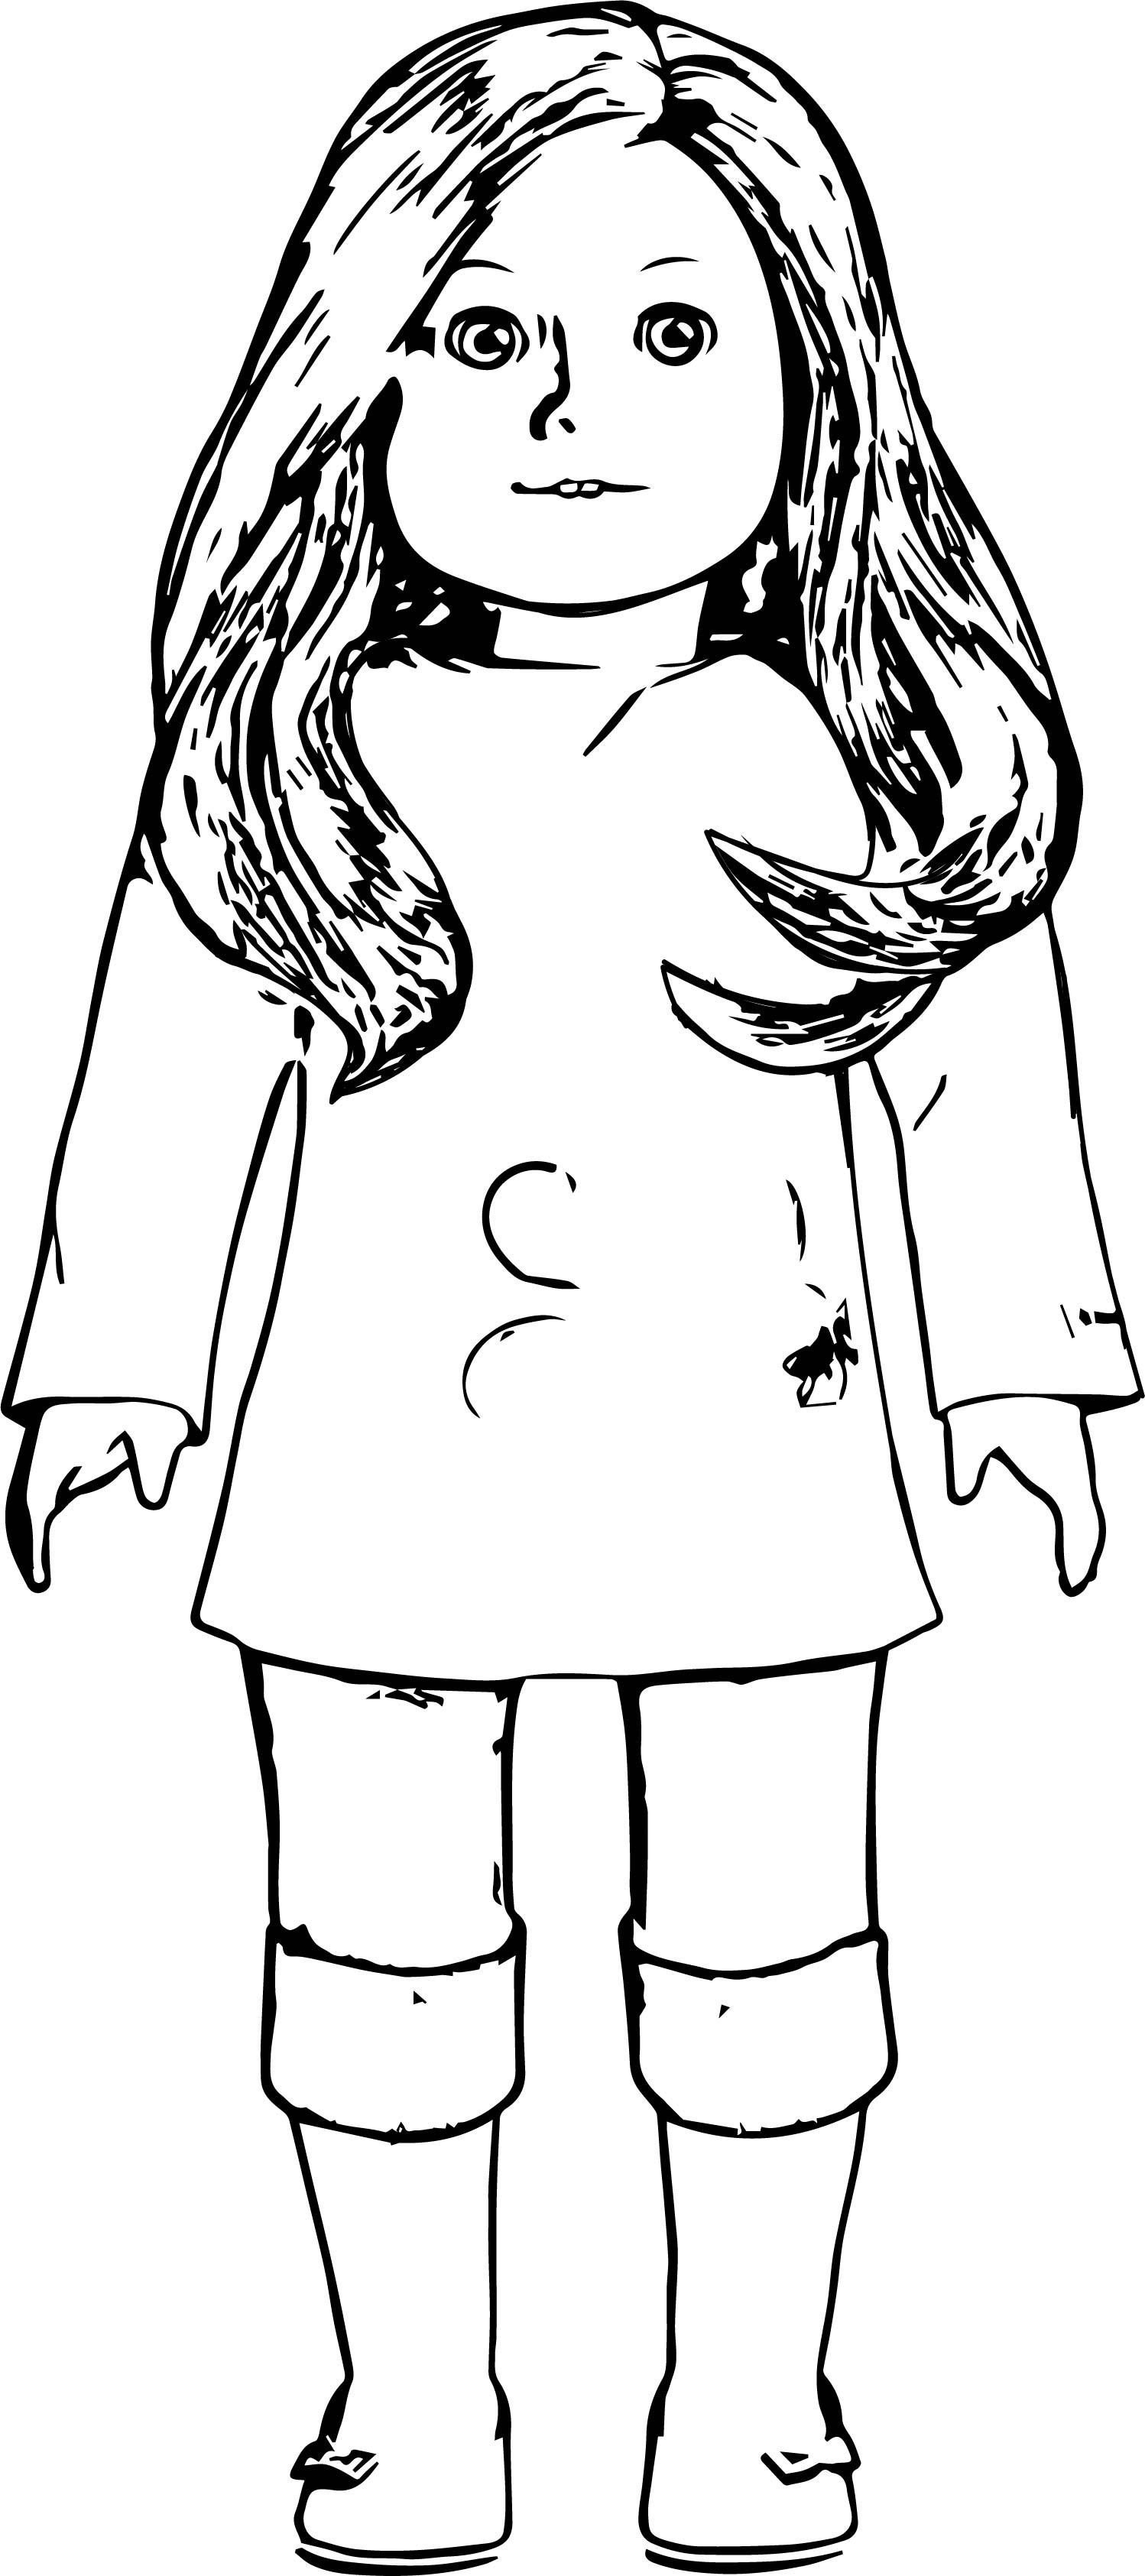 American Girl Coloring Pages Best Coloring Pages For Kids In 2020 American G In 2021 American Girl Doll Pictures Coloring Pages For Girls American Girl Doll Printables